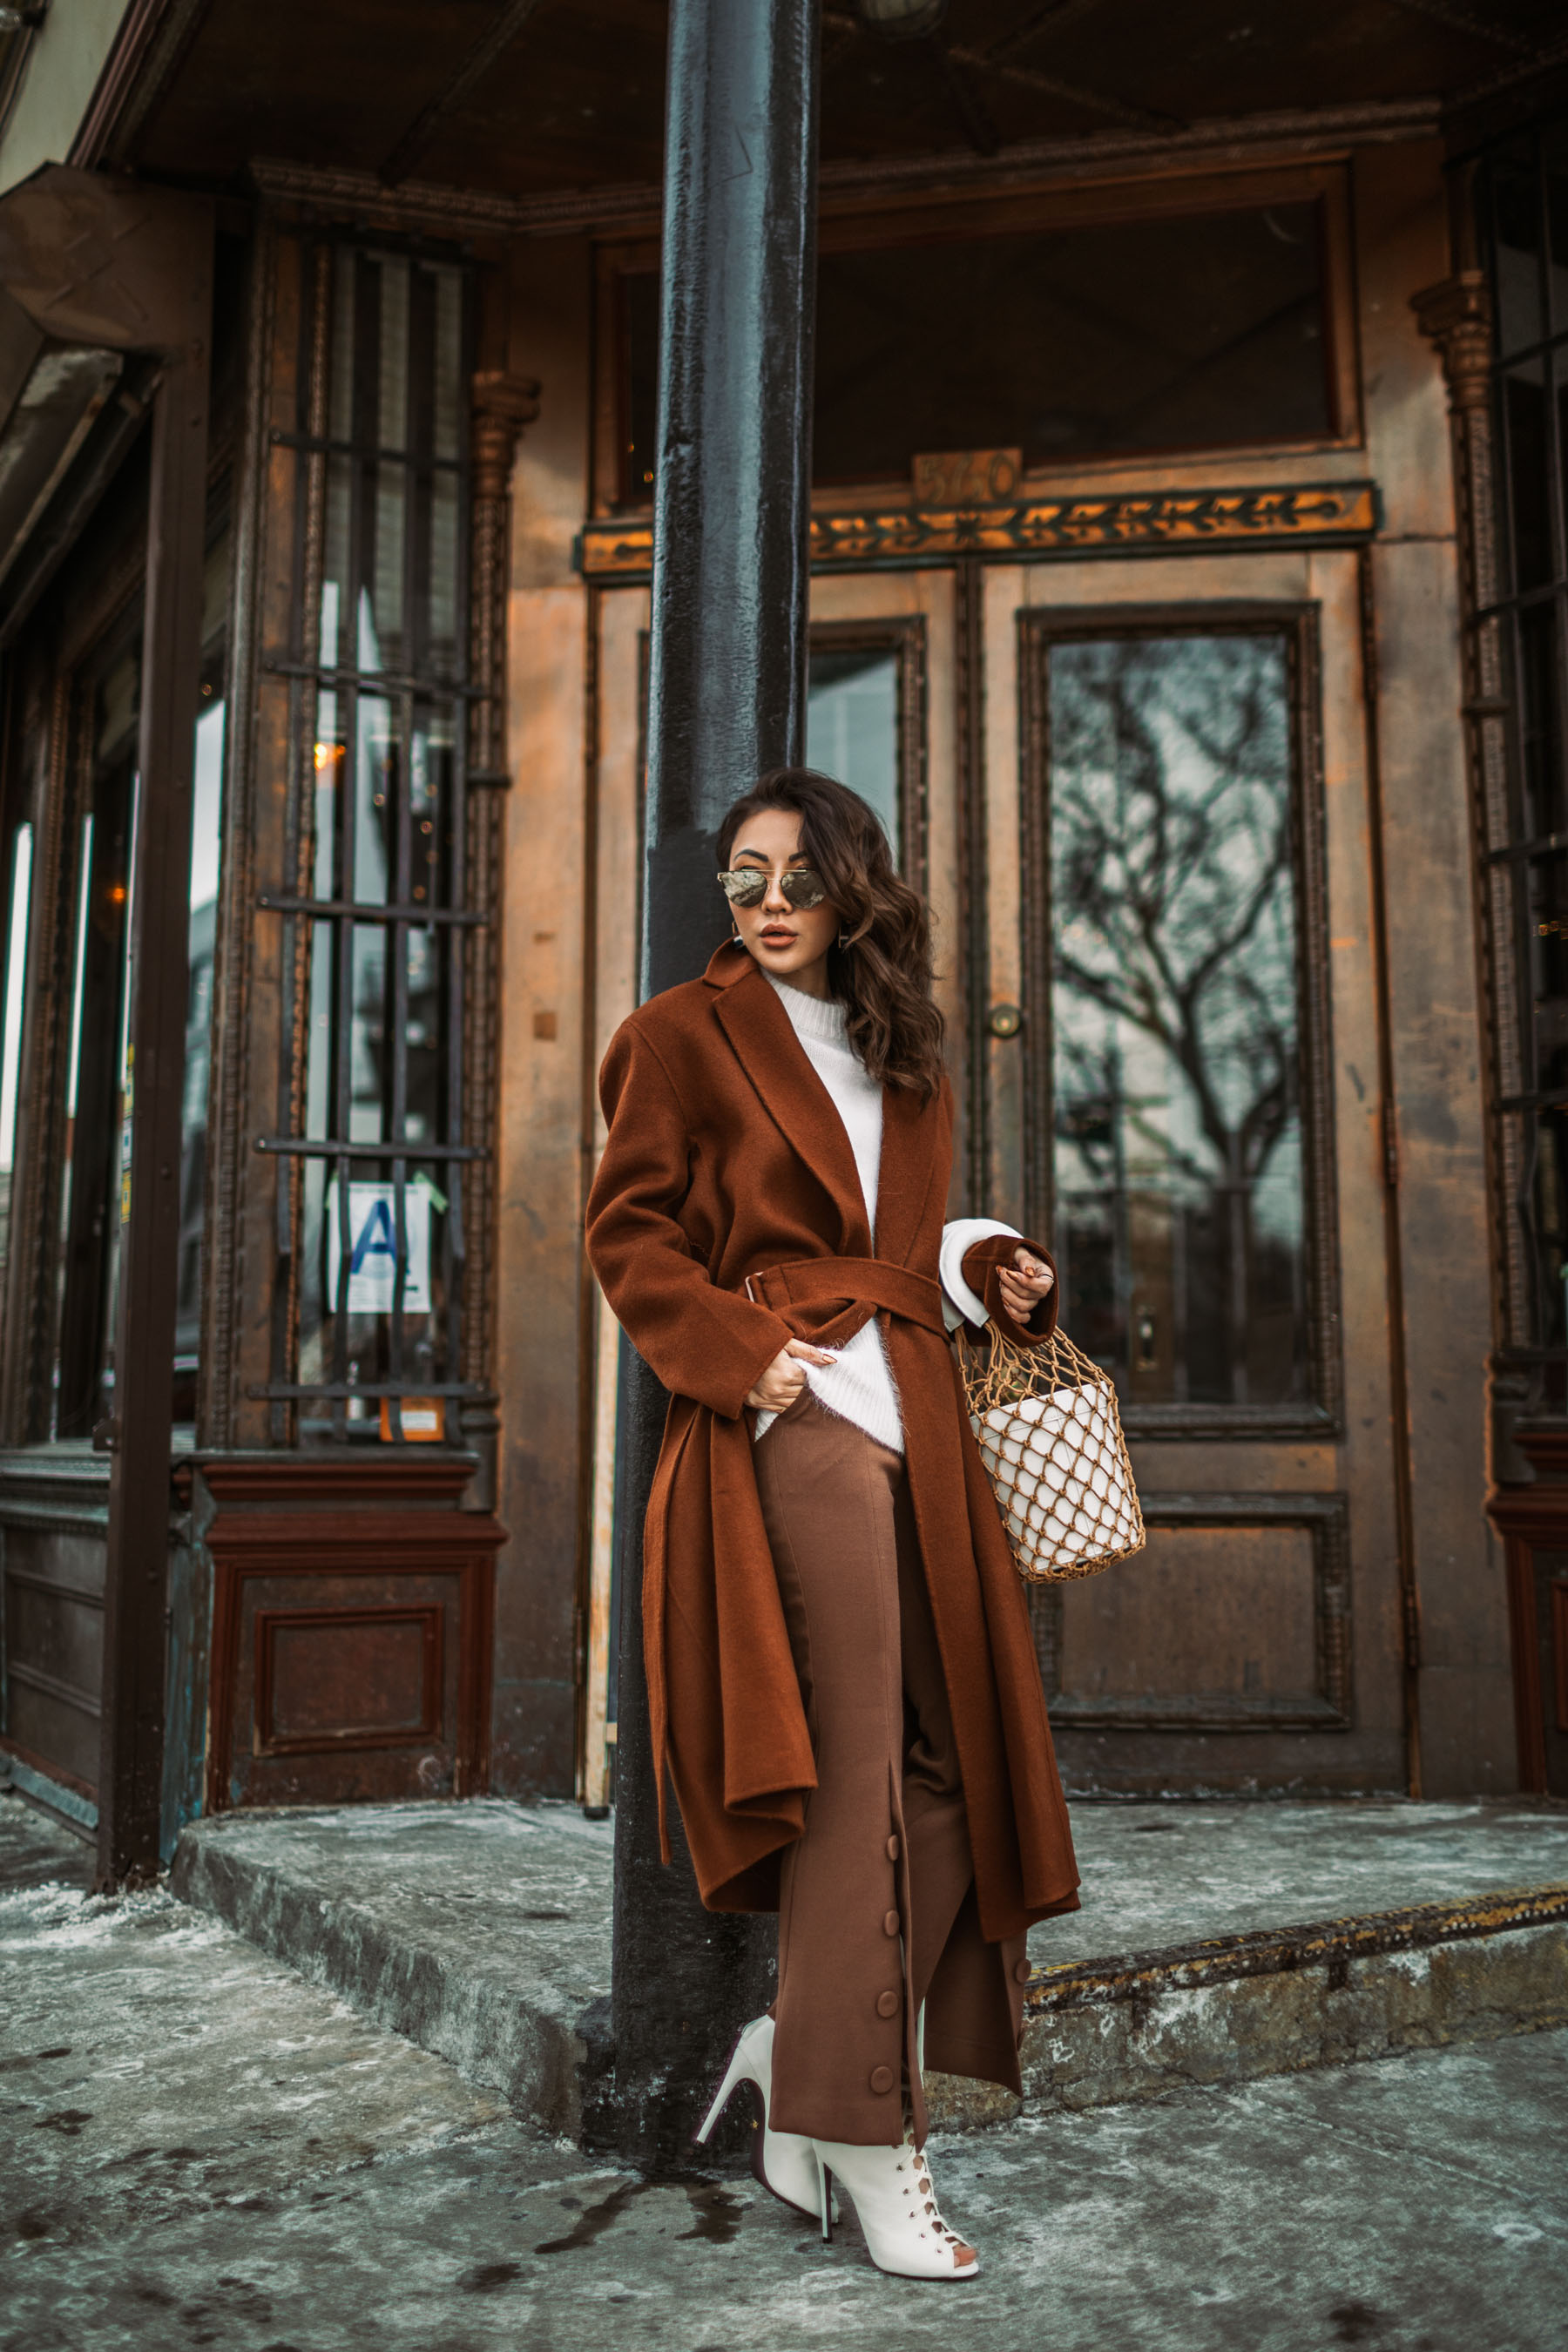 Up and Coming Handbag Brands to Know in 2018 // Notjessfashion.com // staud macrame bag, brown button trousers, wrap coat, robe coat, chic winter outfit, new york fashion blogger, aviator sunglasses, brown monochromatic outfit